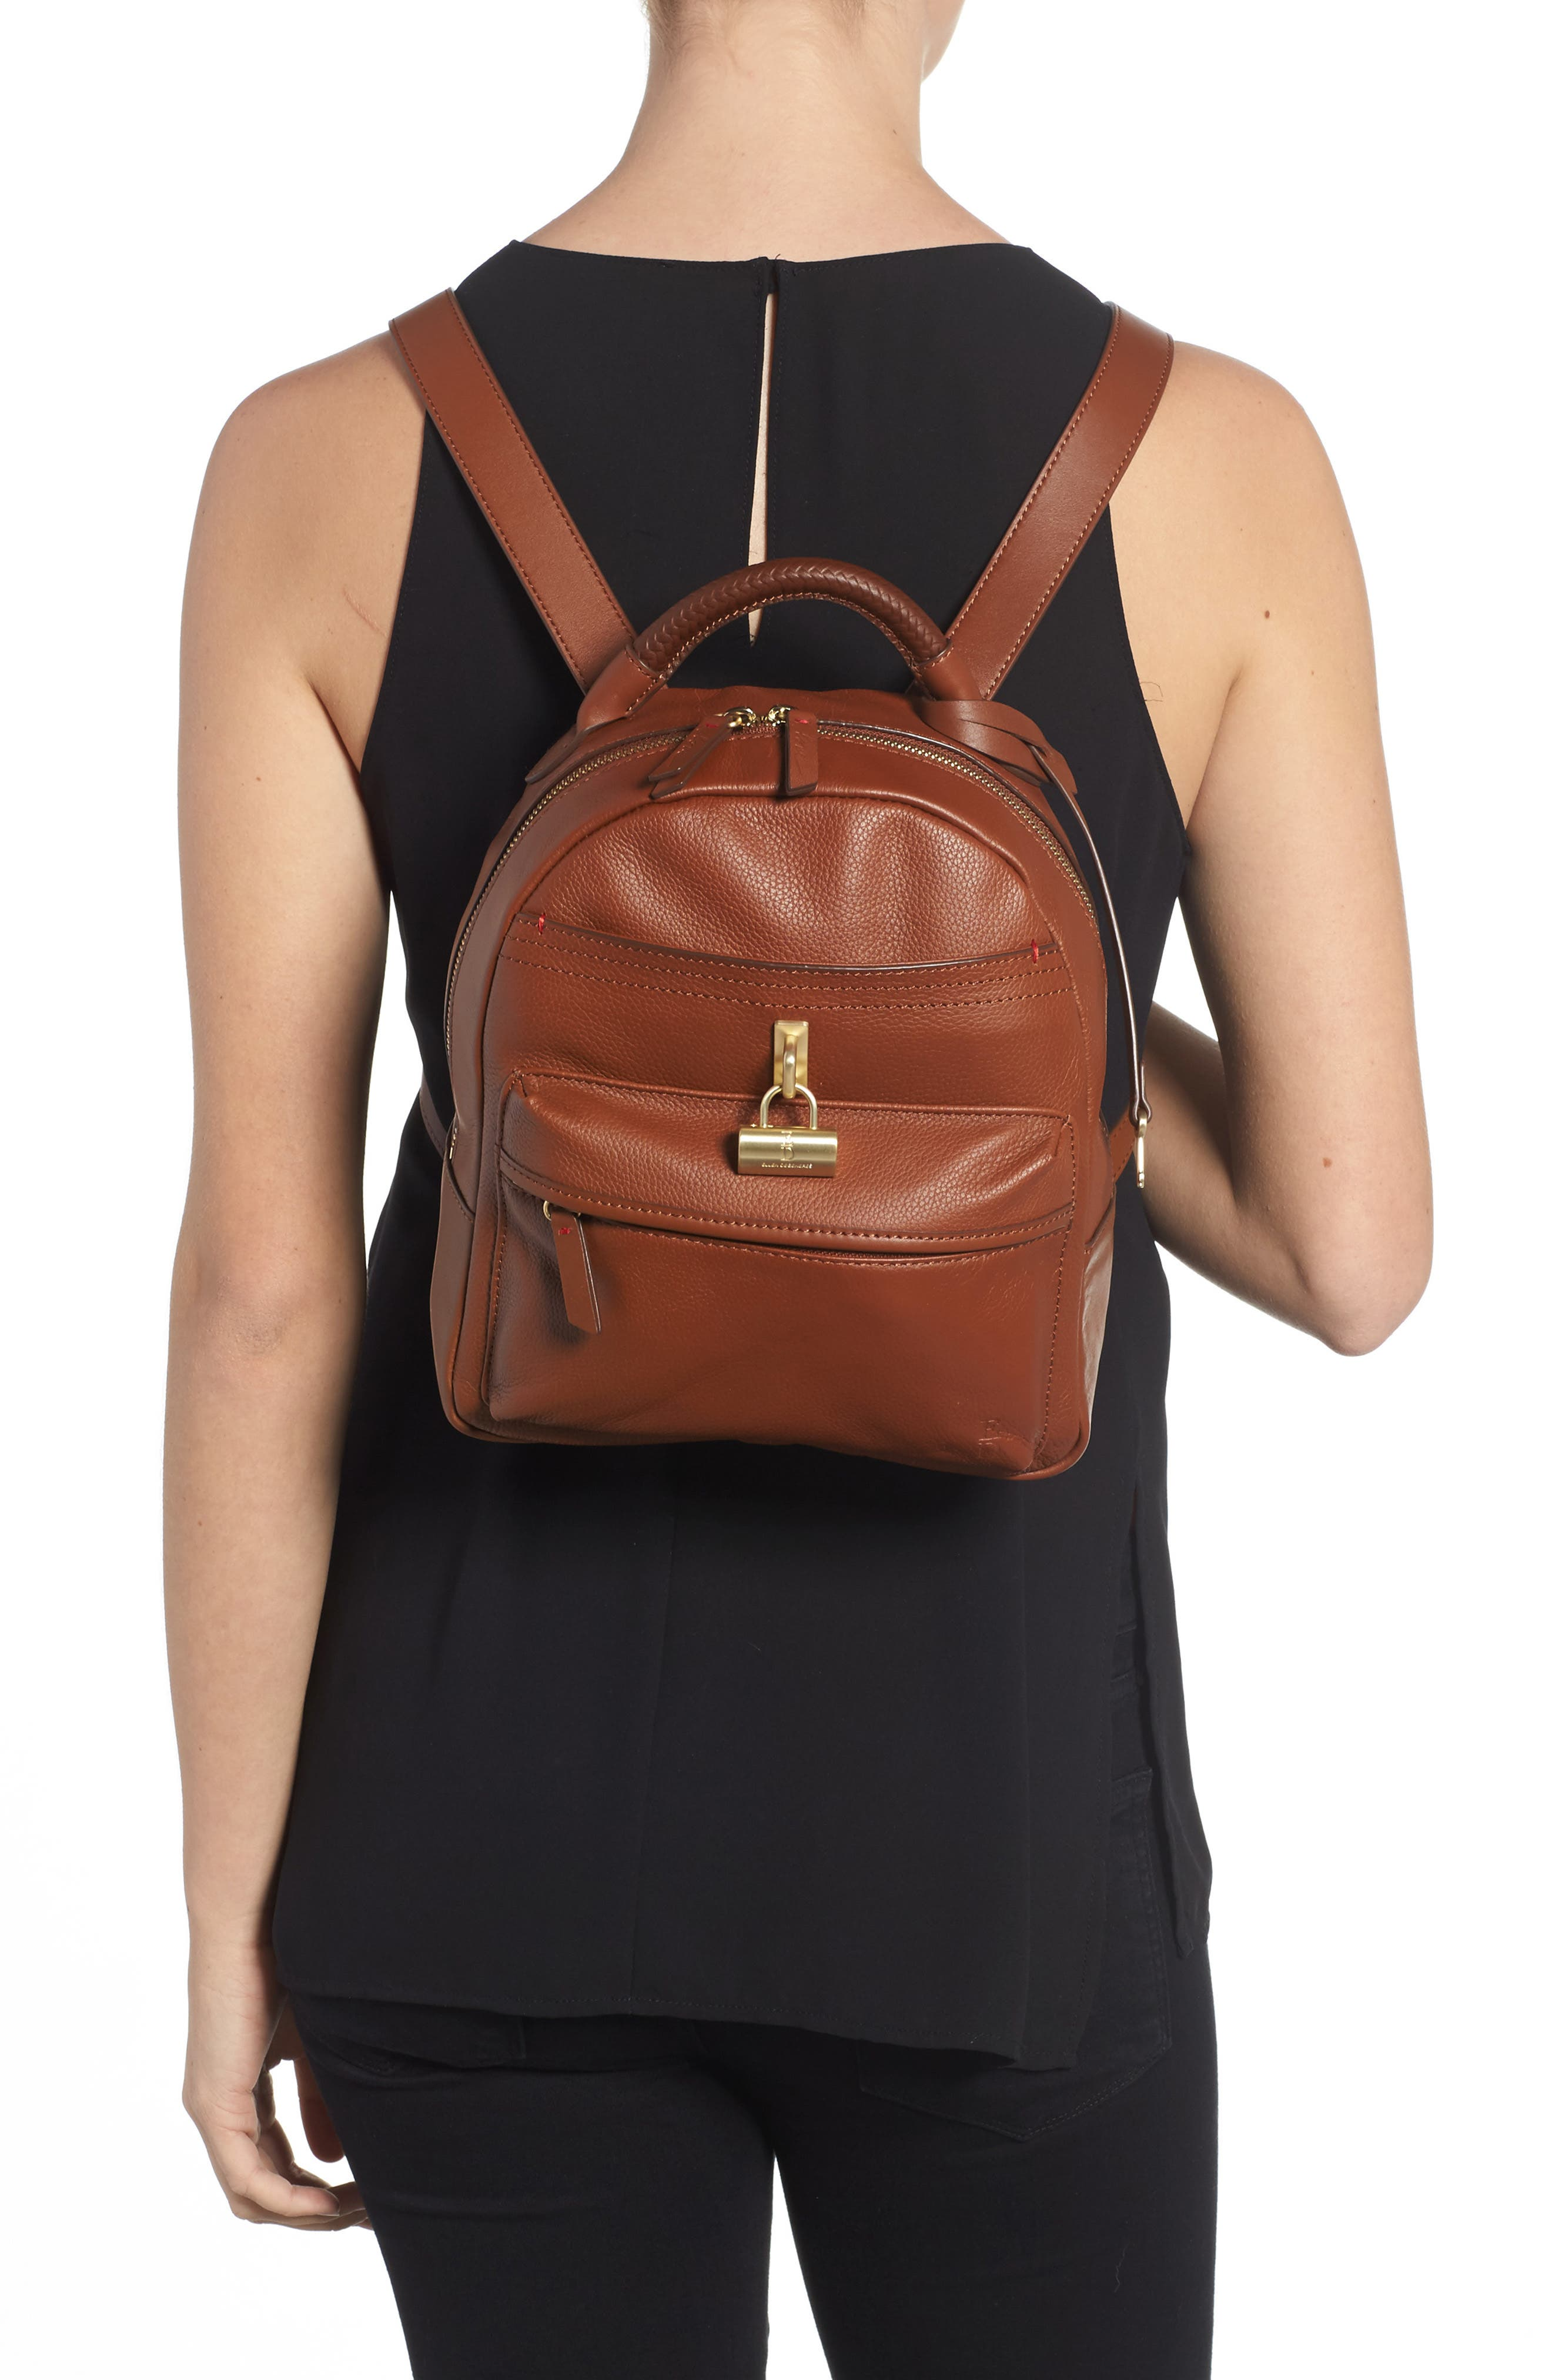 Brody Leather Backpack,                             Alternate thumbnail 2, color,                             242